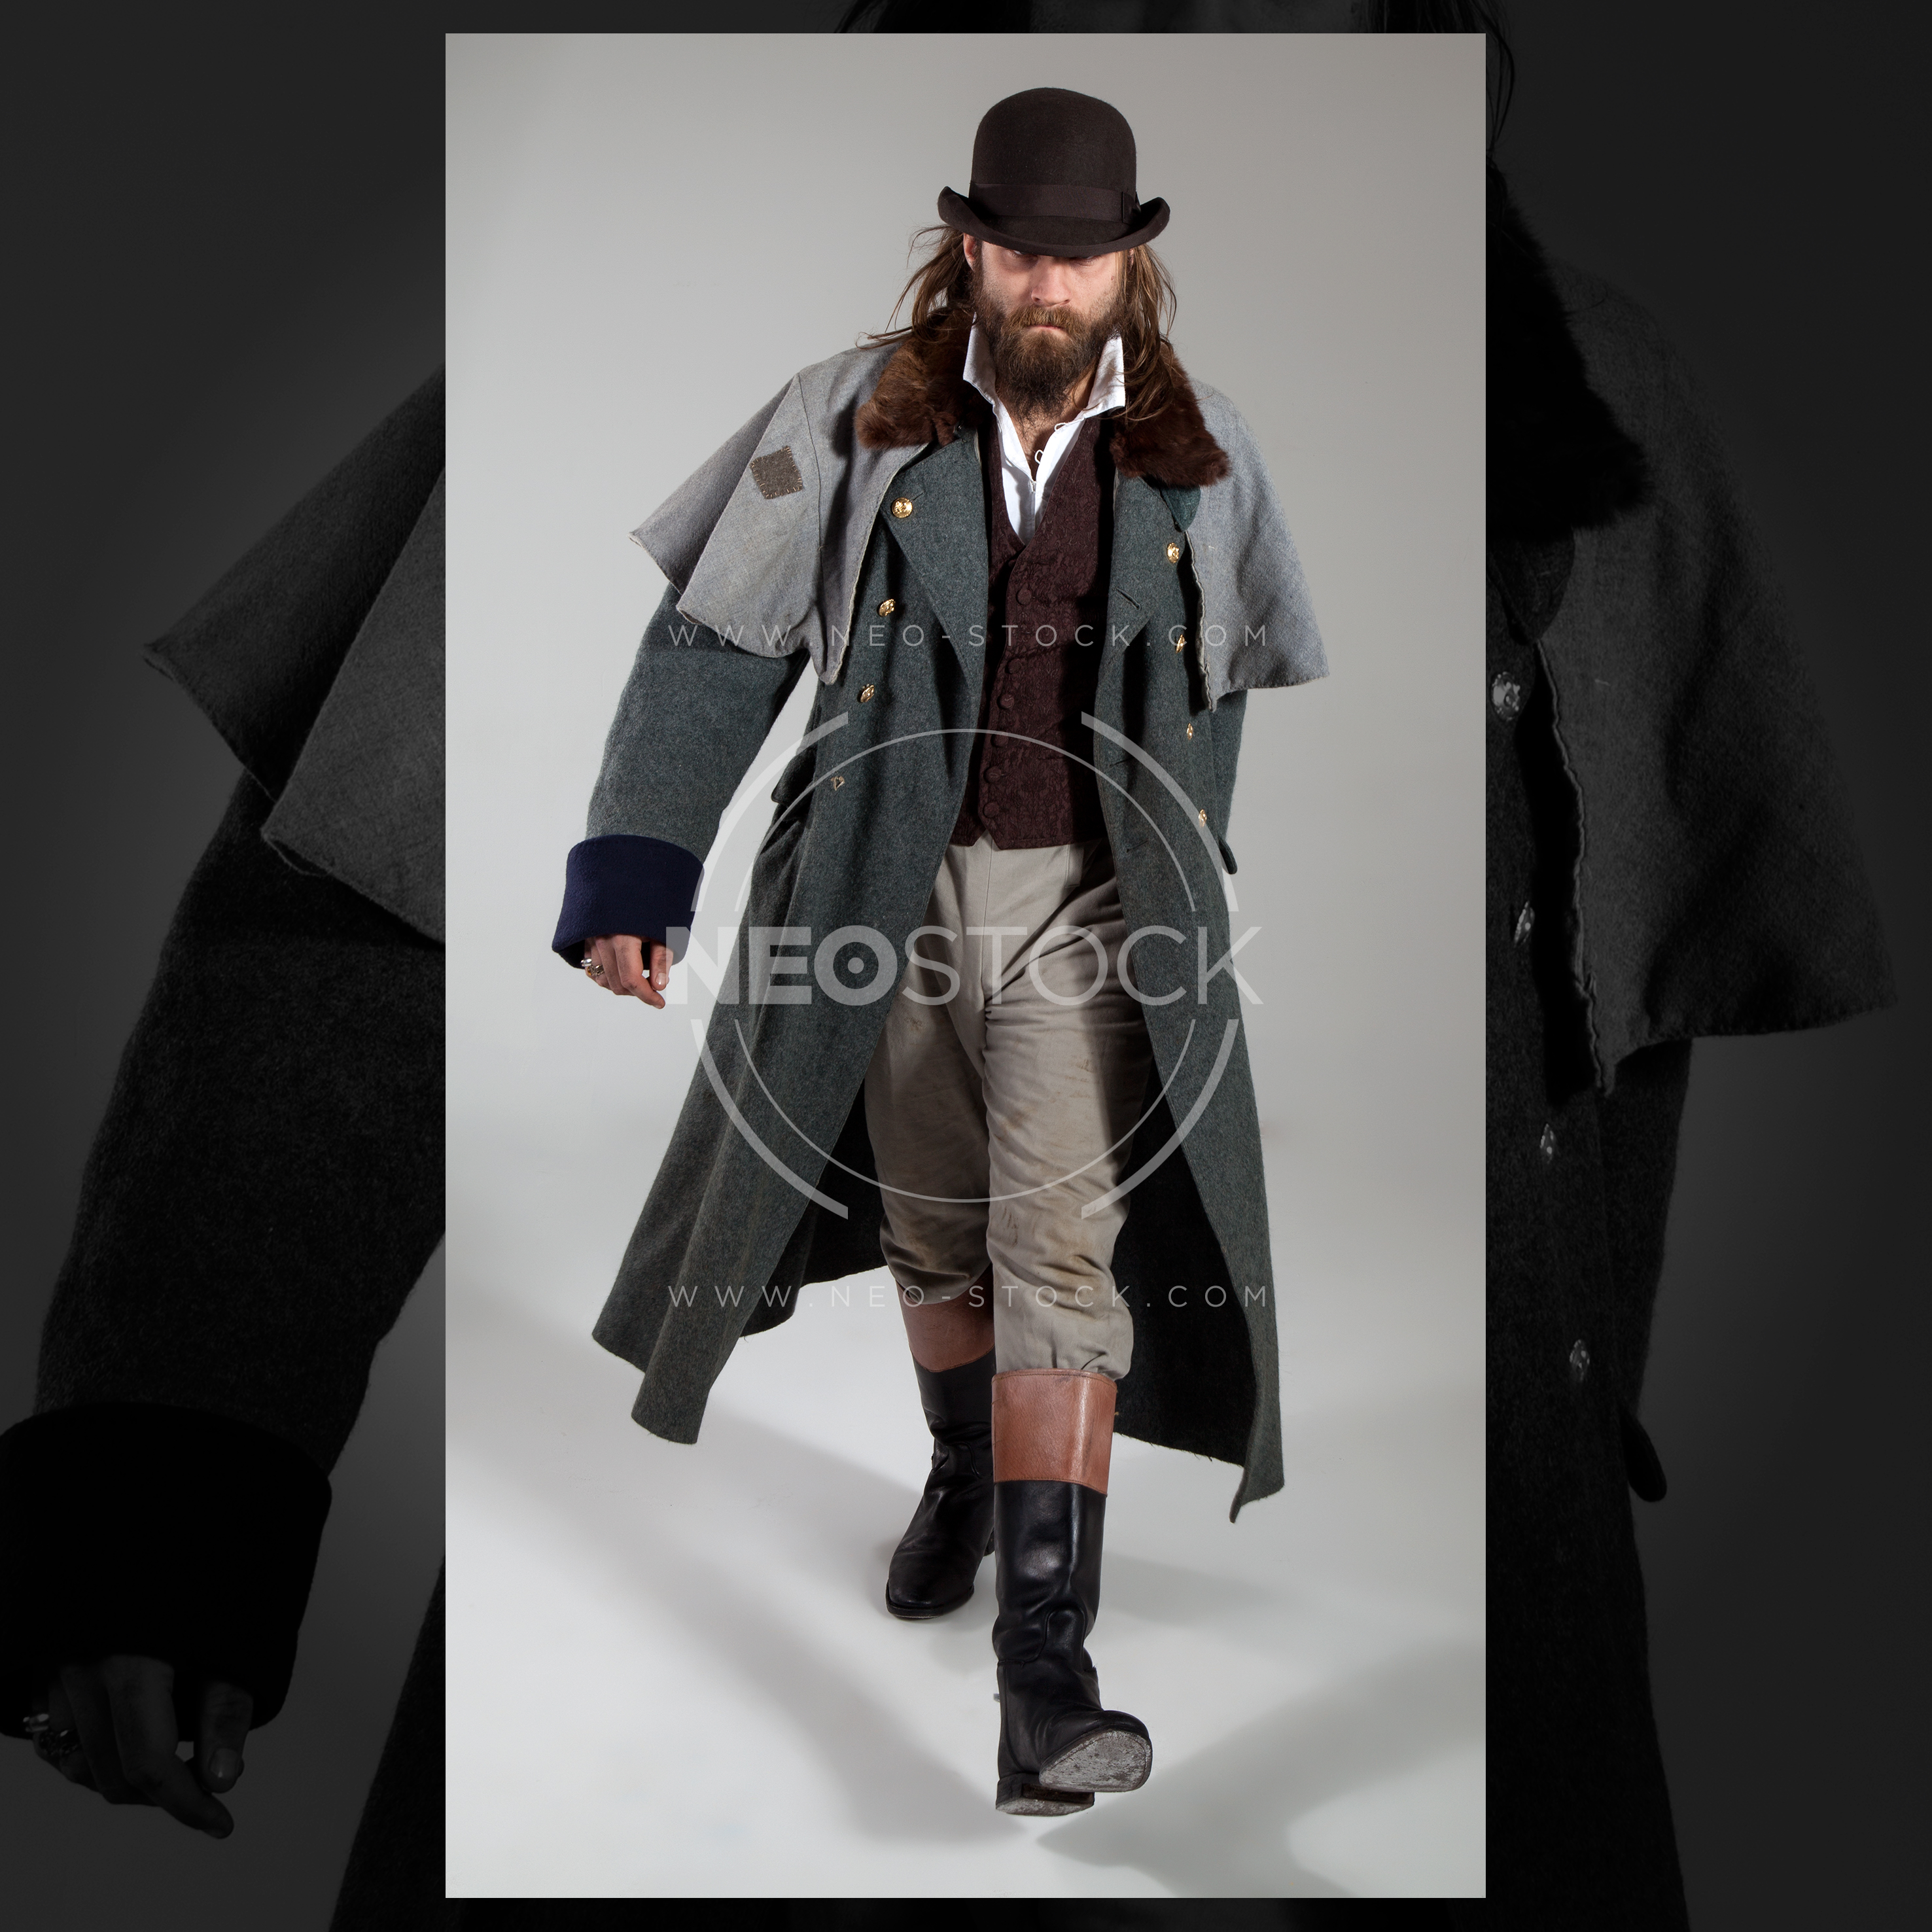 NeoStock - Karlos Pirate Rogue - Stock Photography V